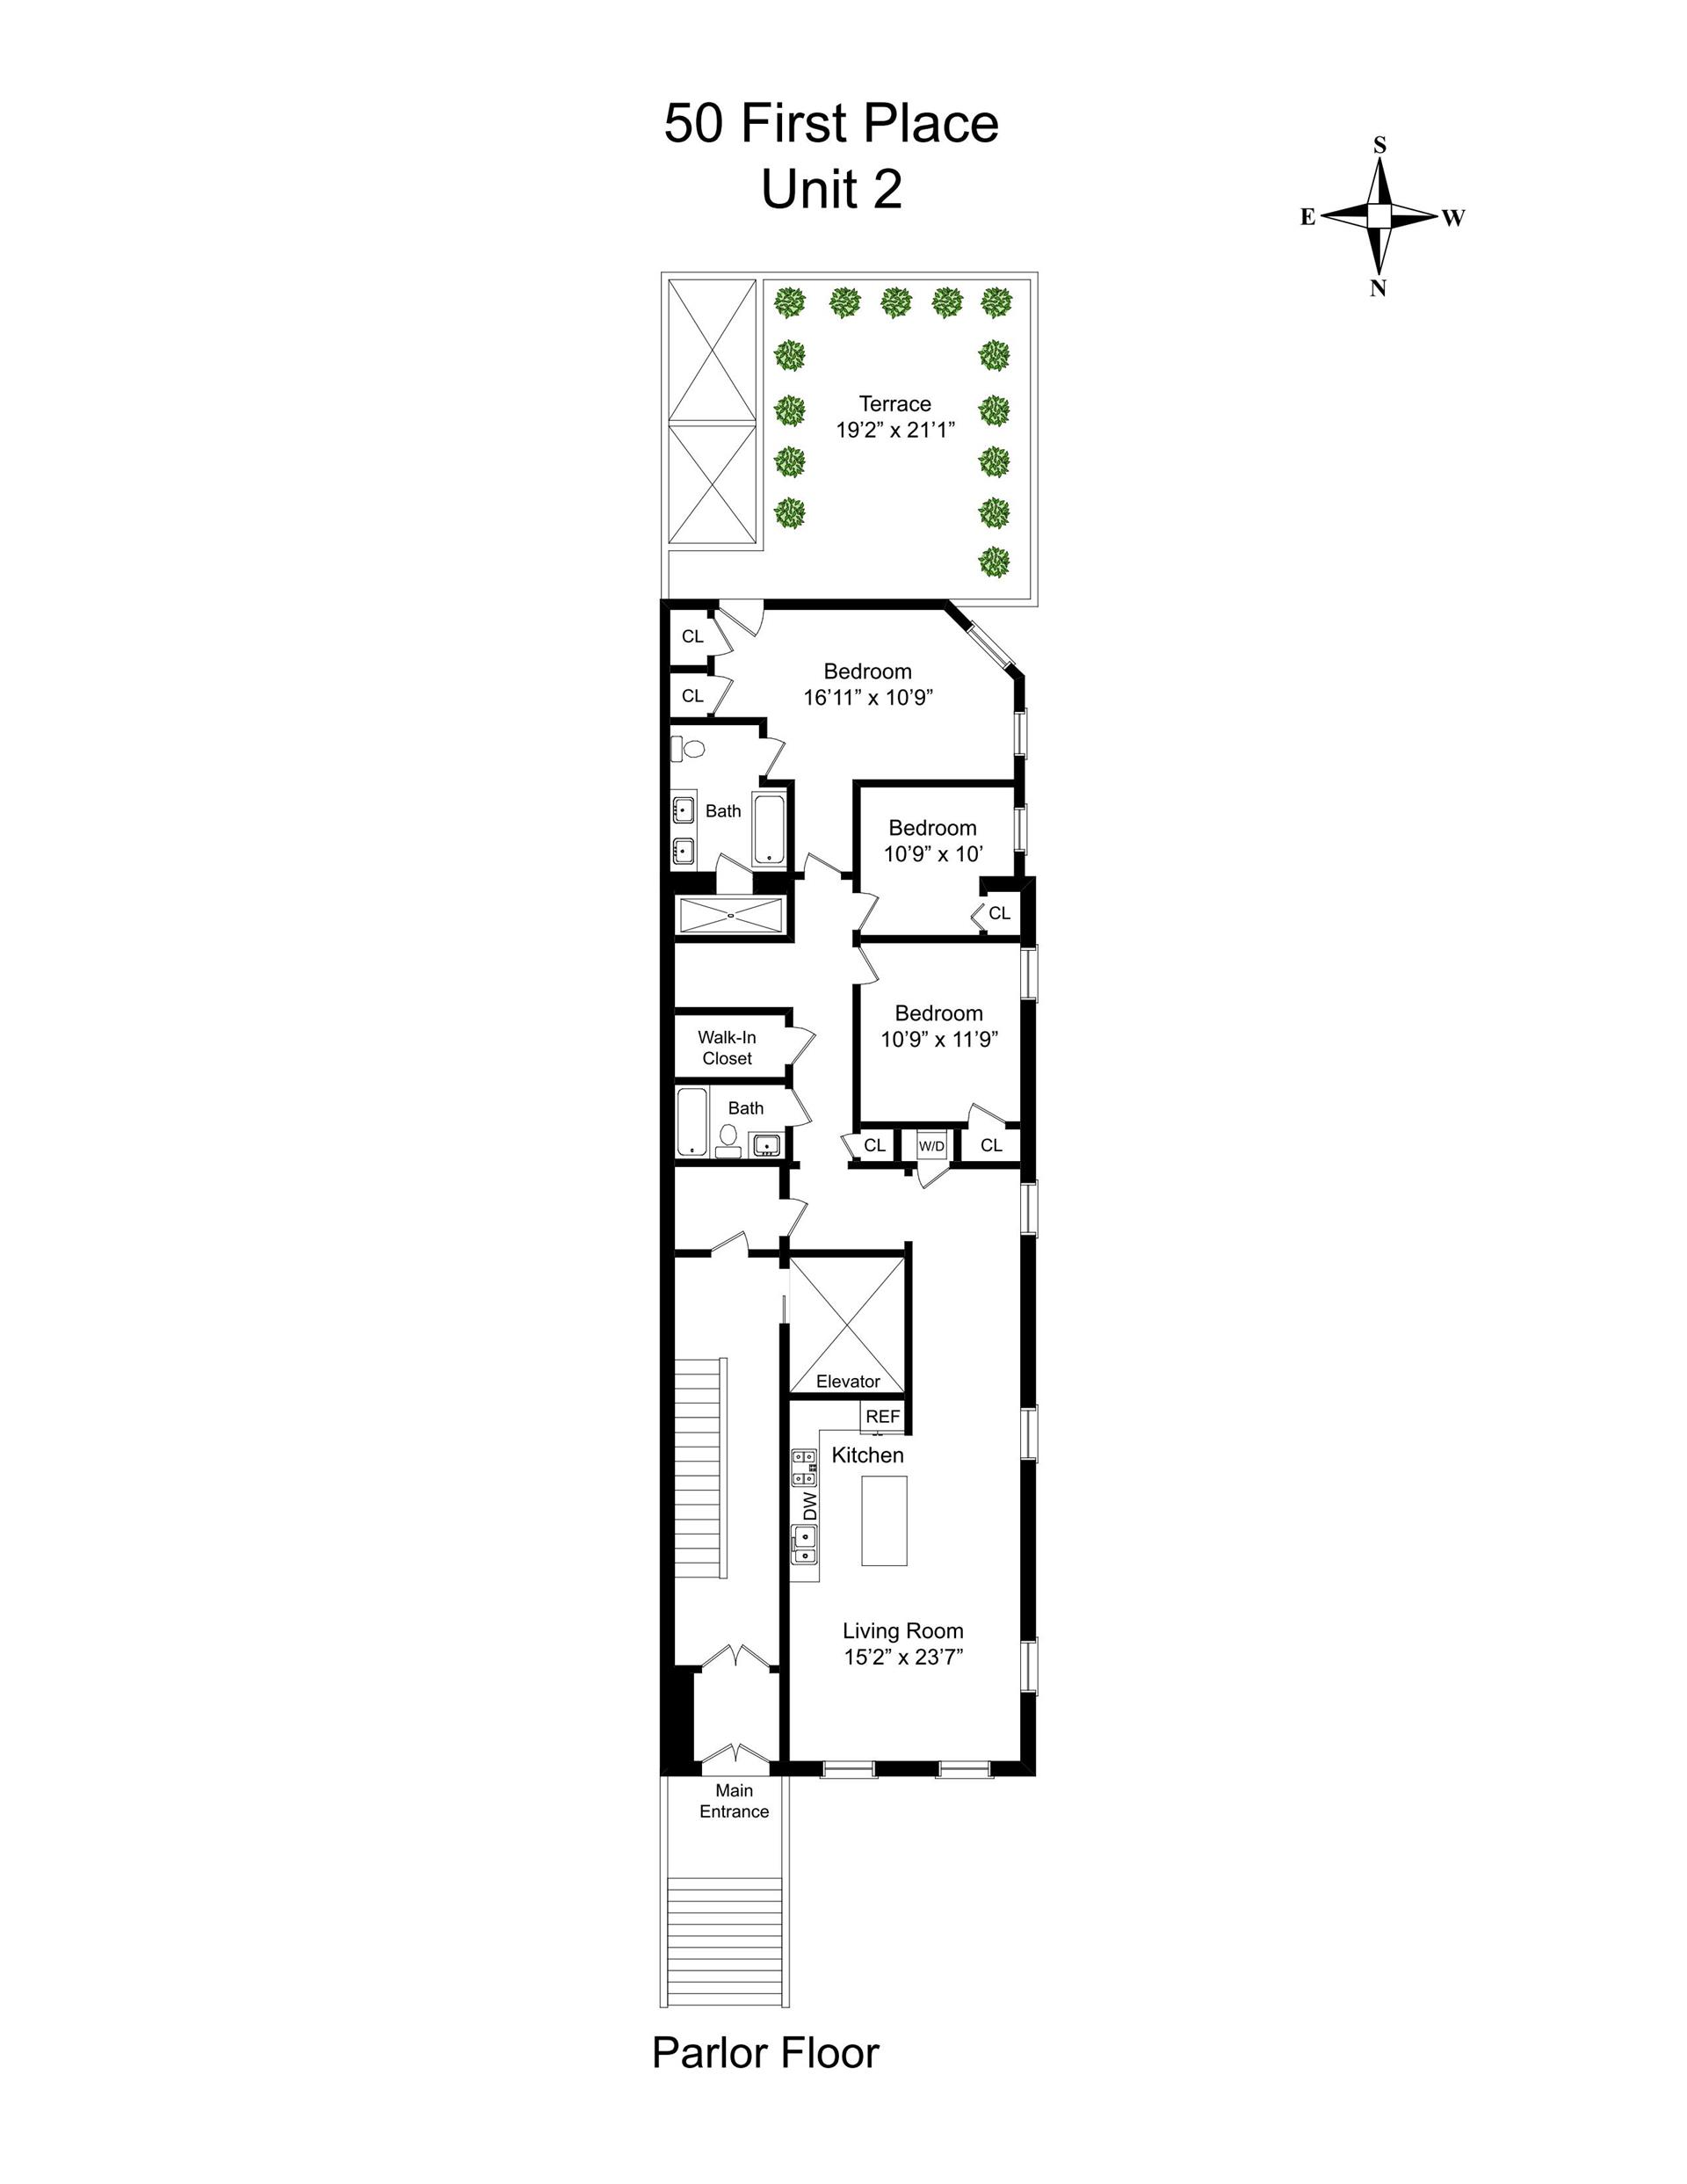 Floor plan of 50 First Pl, 2 - Carroll Gardens, New York